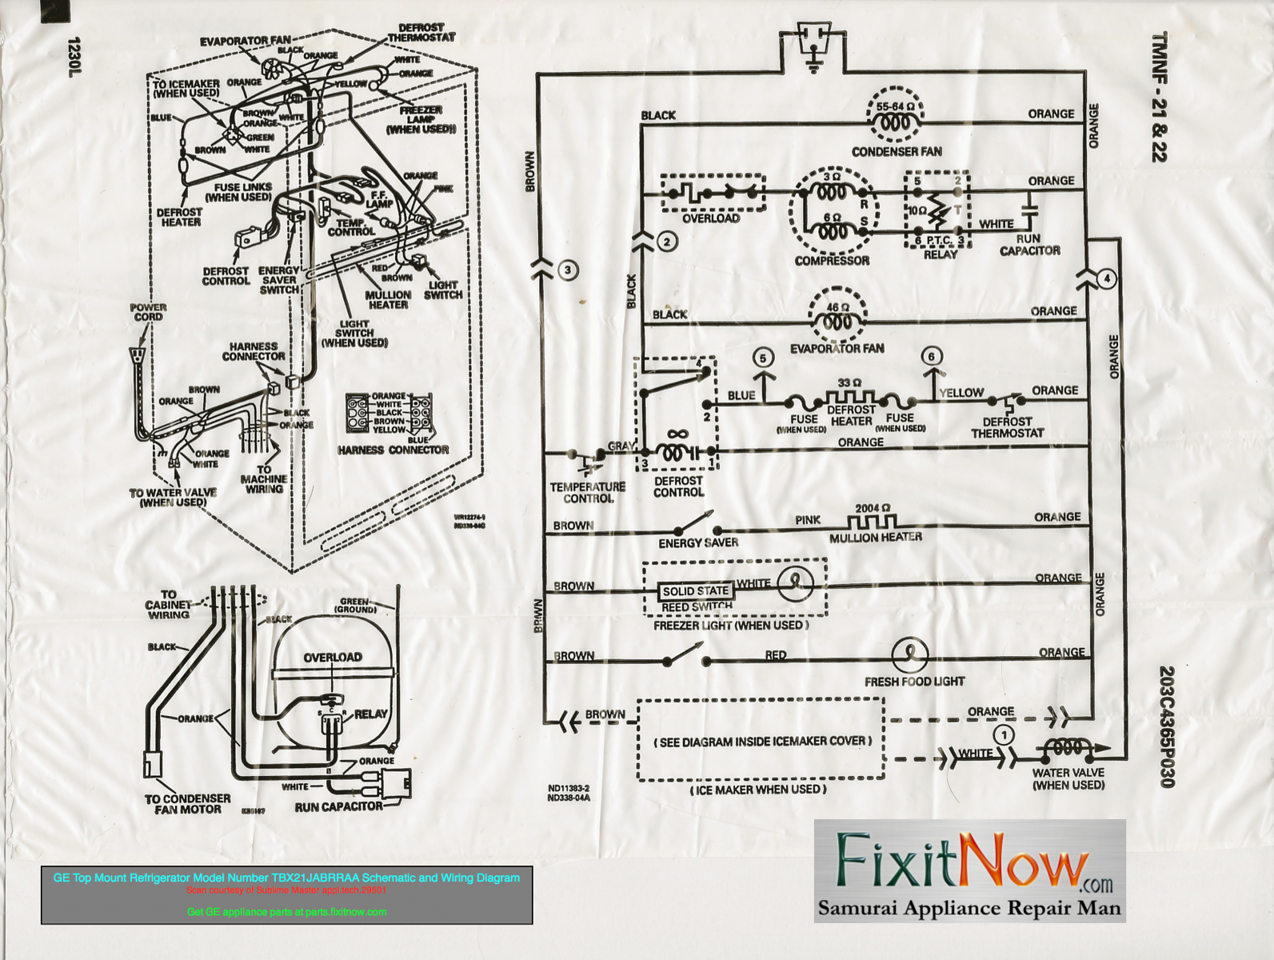 4904374061_e8eb3df6c6_o X2 wiring diagrams and schematics appliantology refrigerator wiring diagram at bayanpartner.co